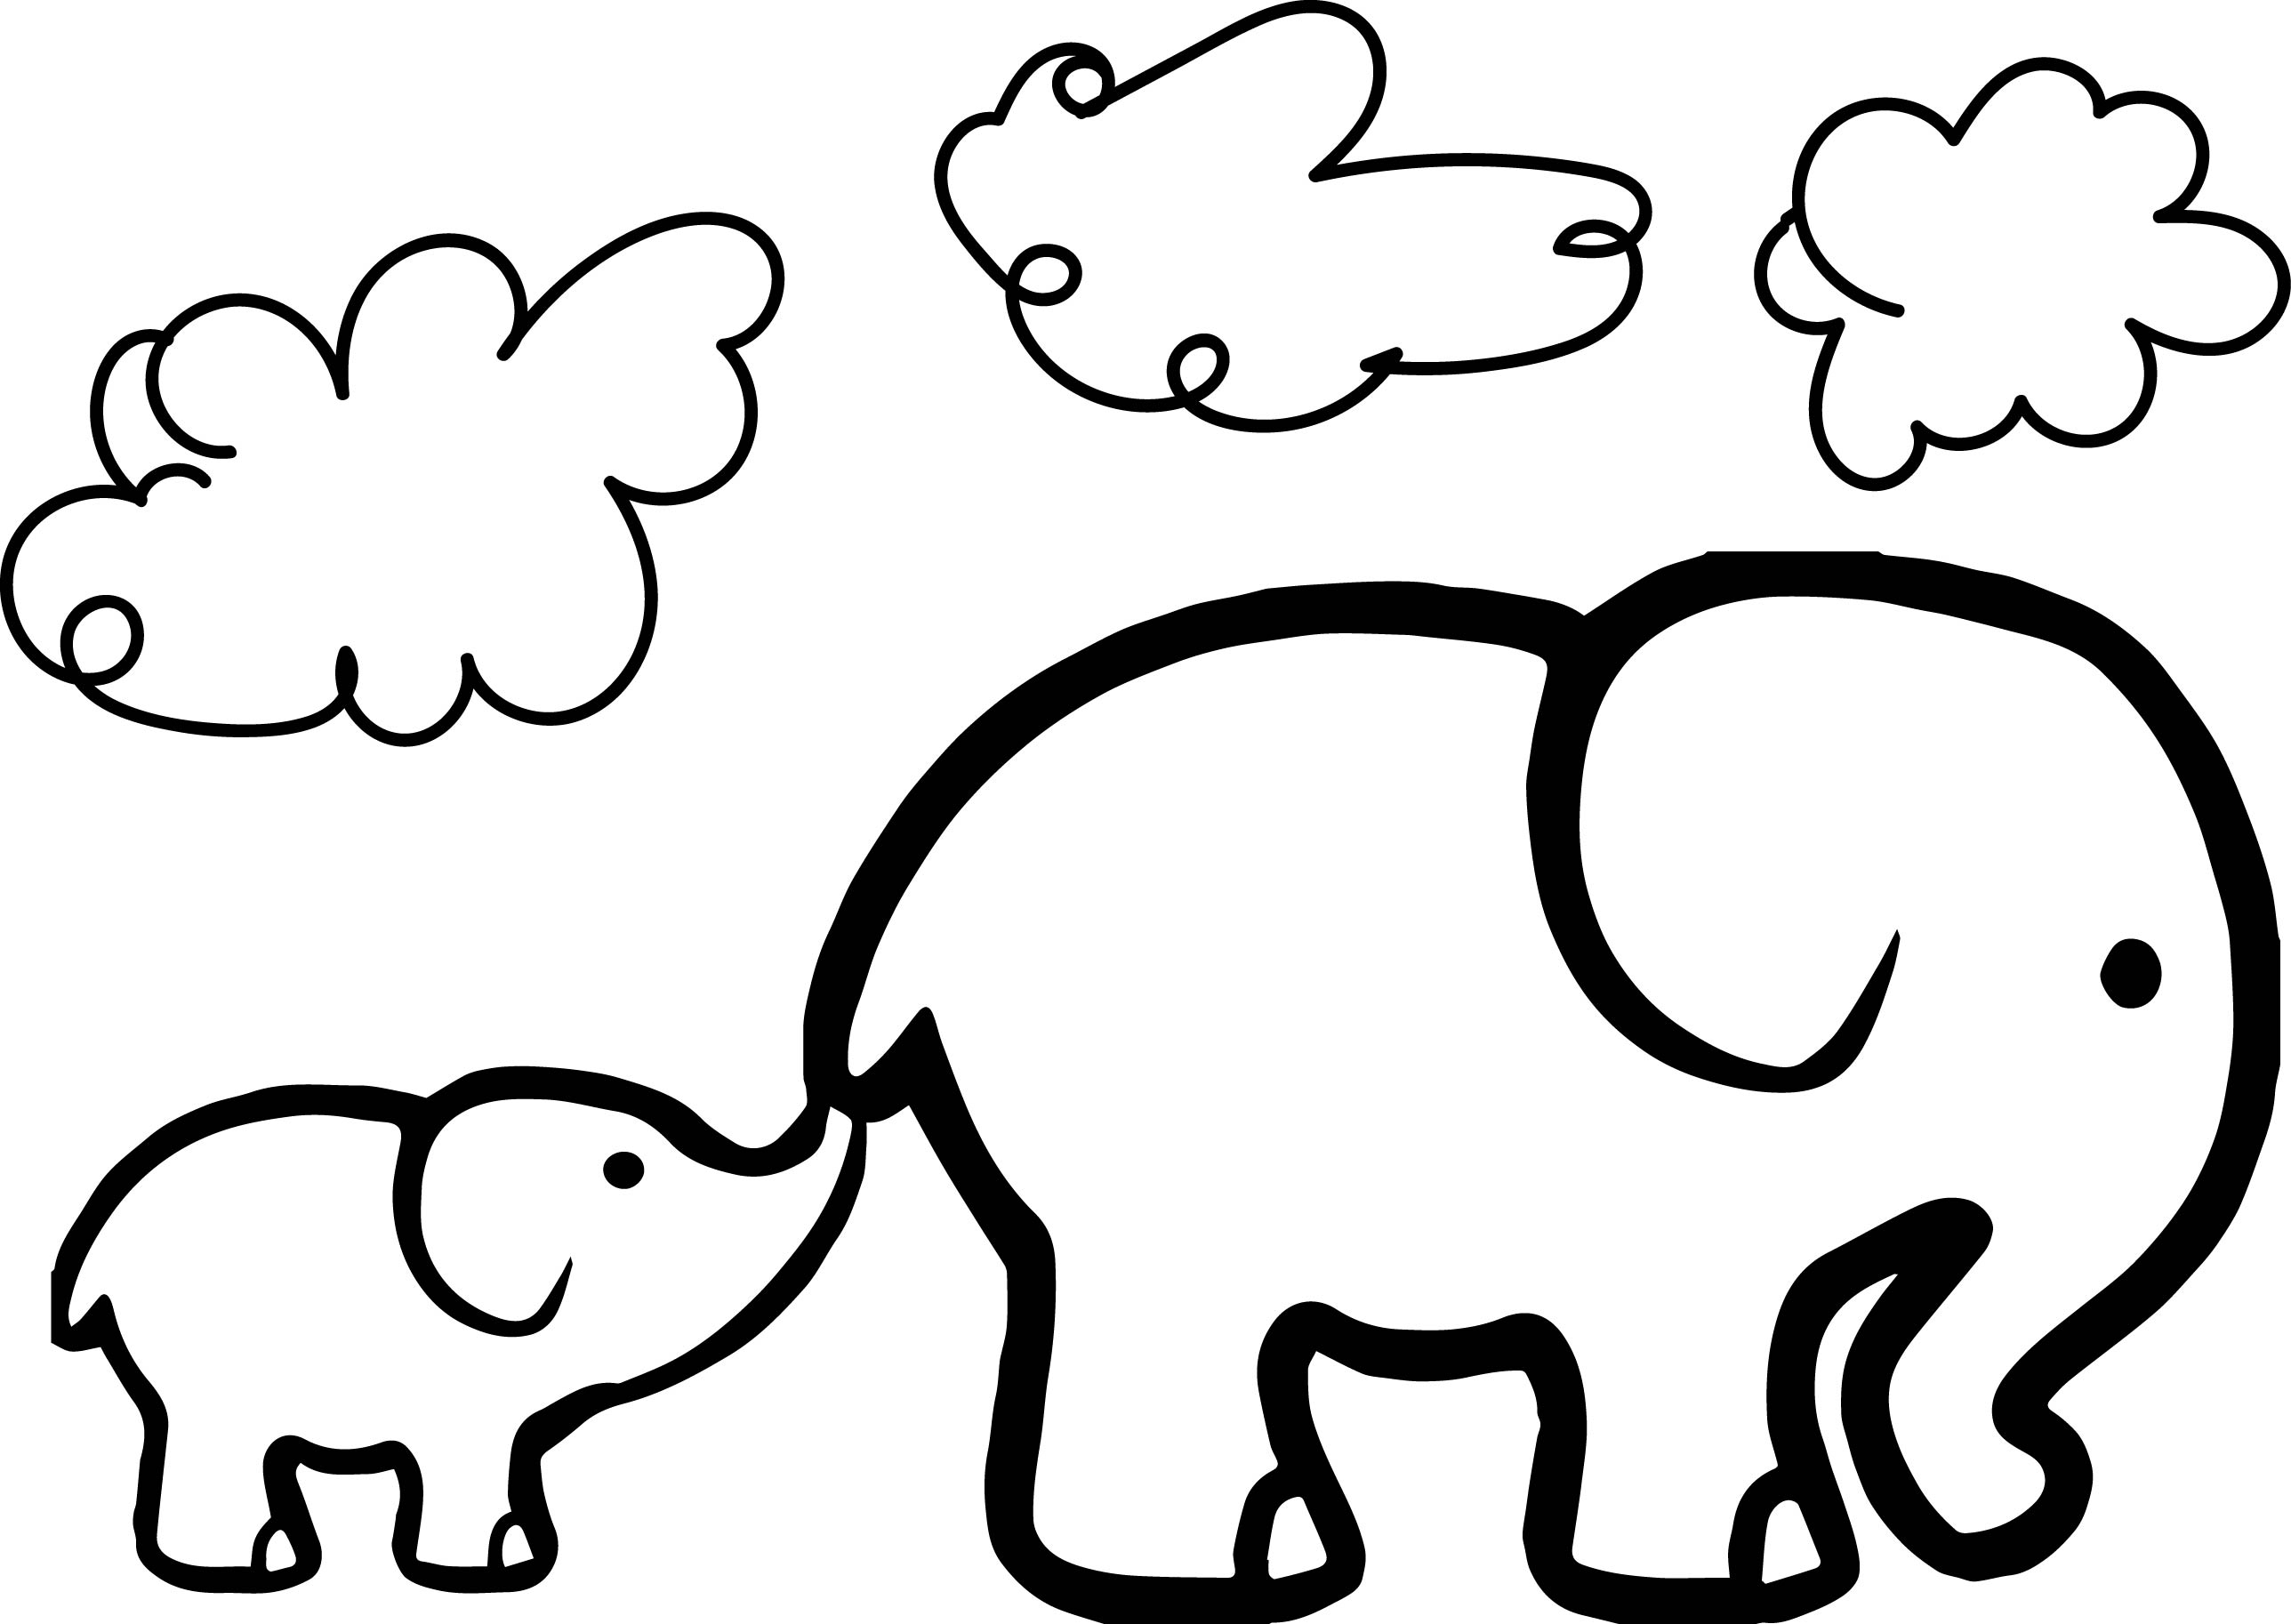 simple baby elephant coloring pages elephant coloring pages pinterest tumblr google yahoo coloring pages simple baby elephant